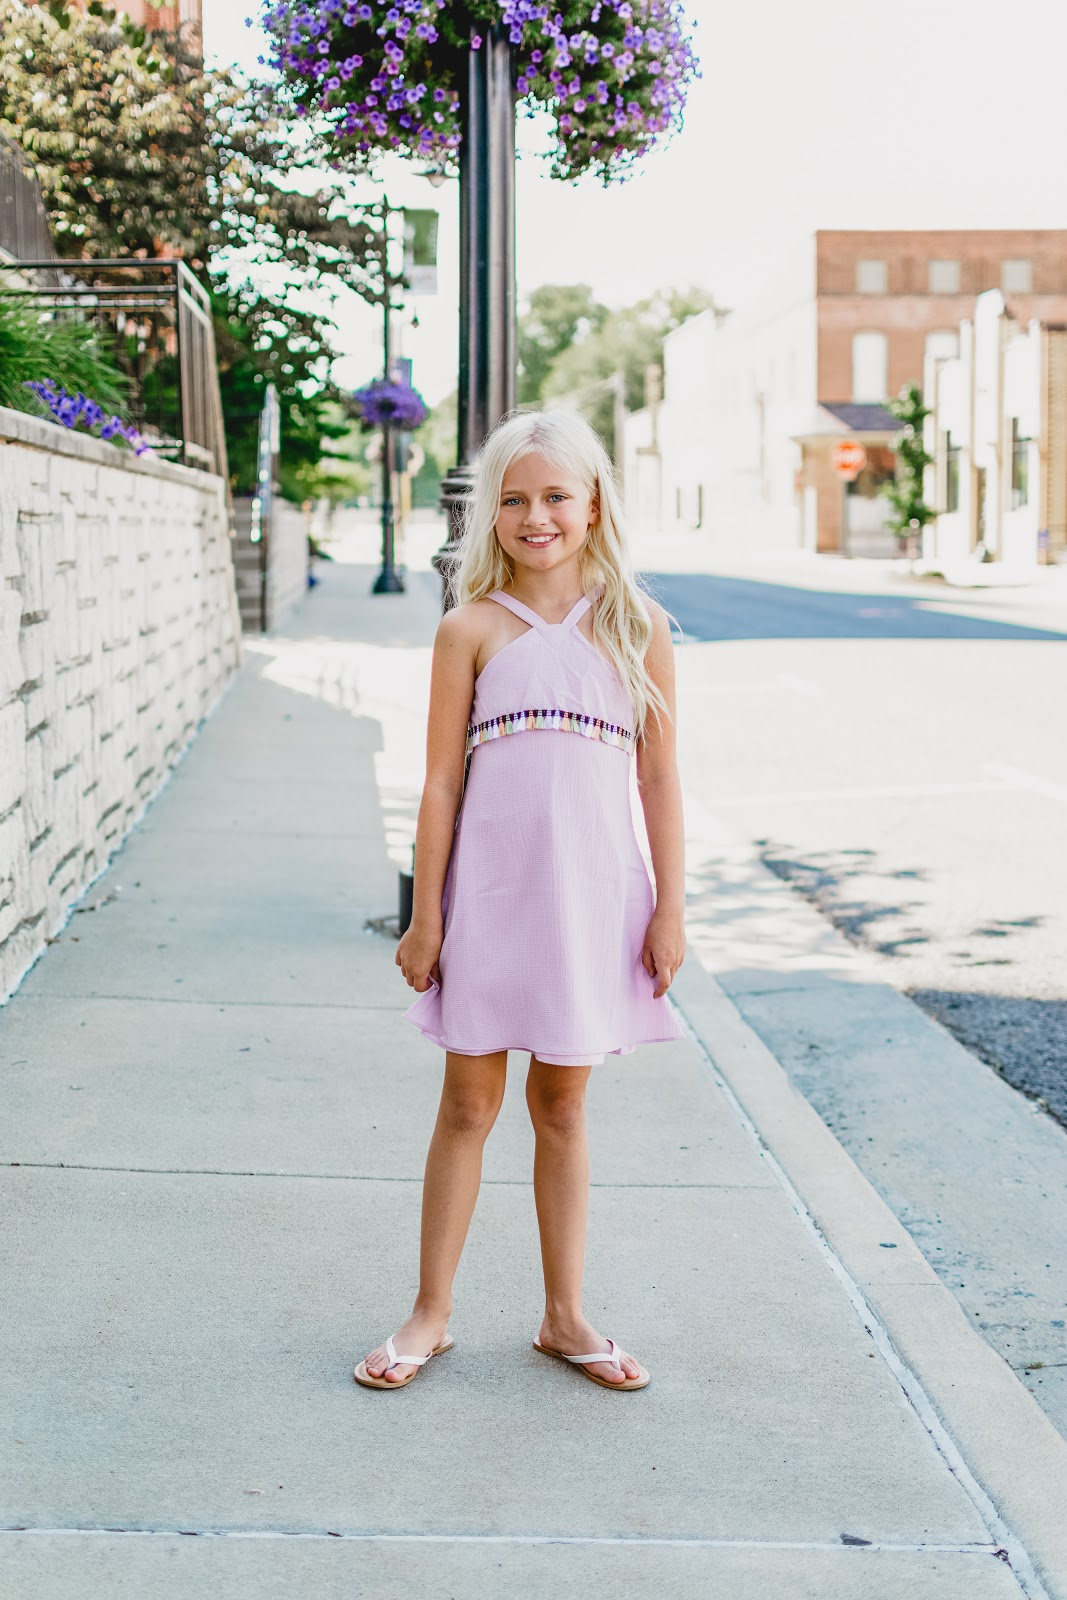 So Many Cute Girls Dresses with Pippa & Julie - dress little girl outfit idea summer tulle rainbow chiffon beautiful beach blonde